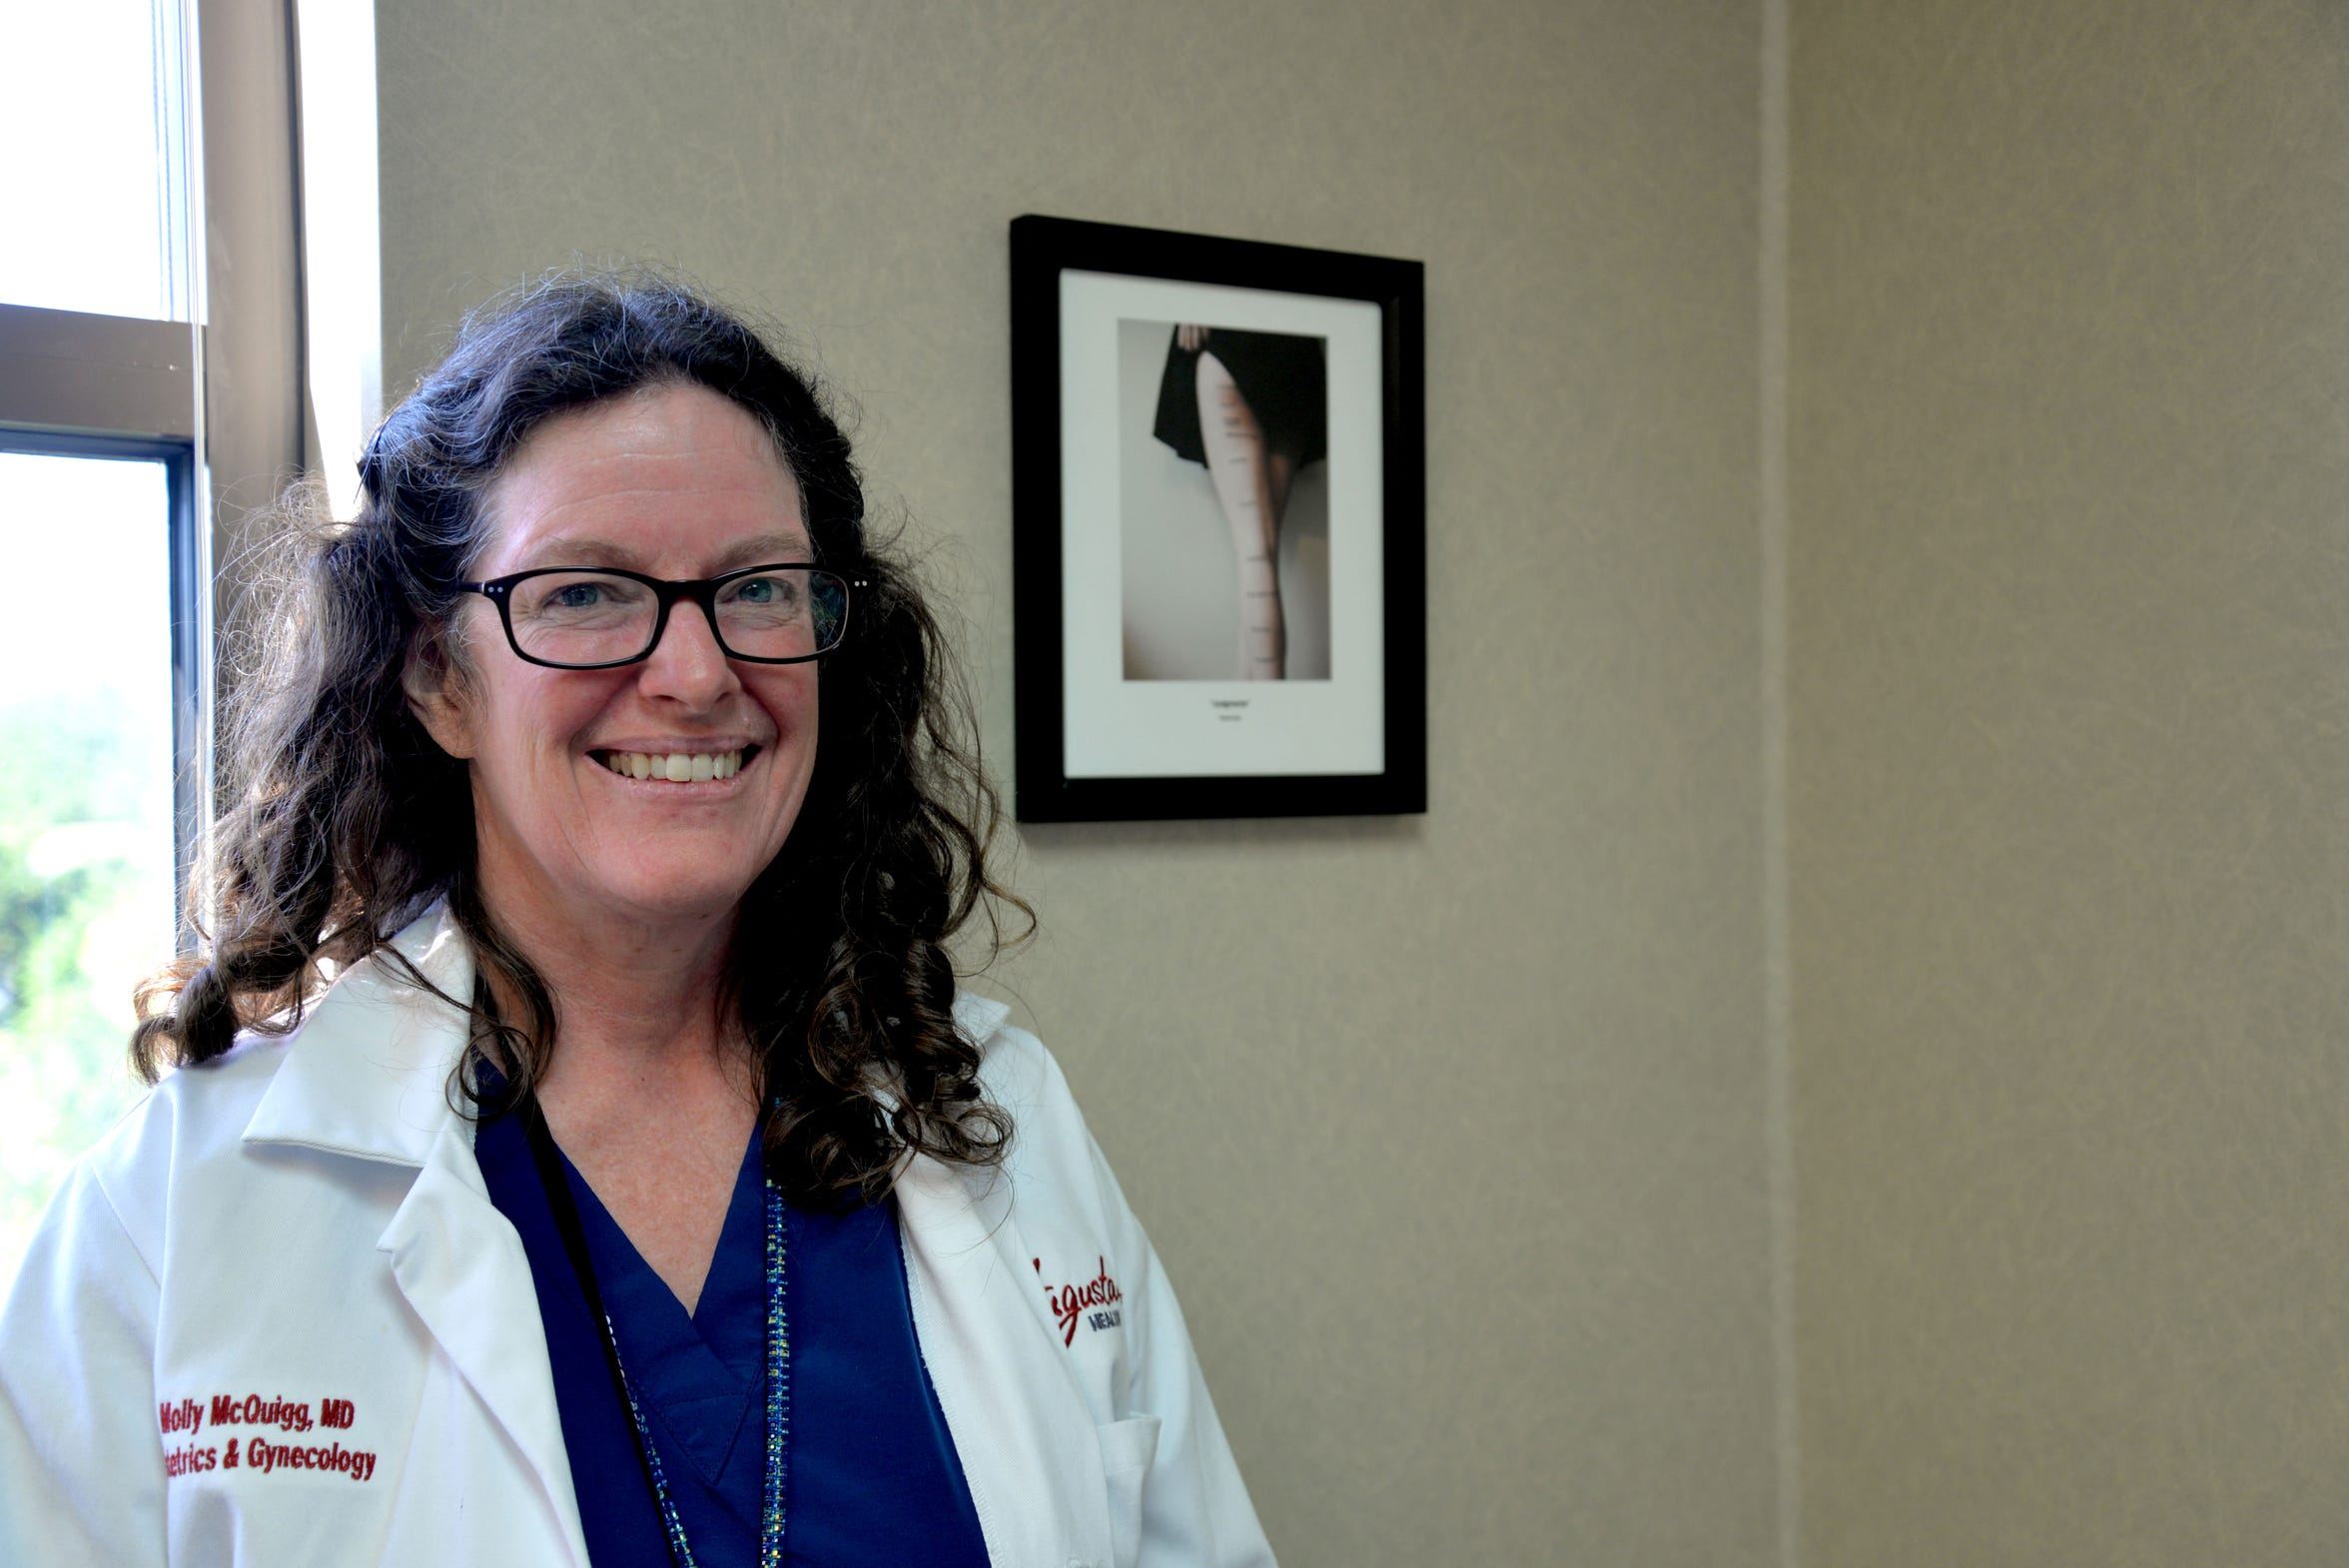 """Dr. Molly McQuigg at her office at Augusta Health Care for Women in Fishersville on June 13, 2019. She stands near one of her favorite prints """"Judgements"""" by Rosea Lake."""